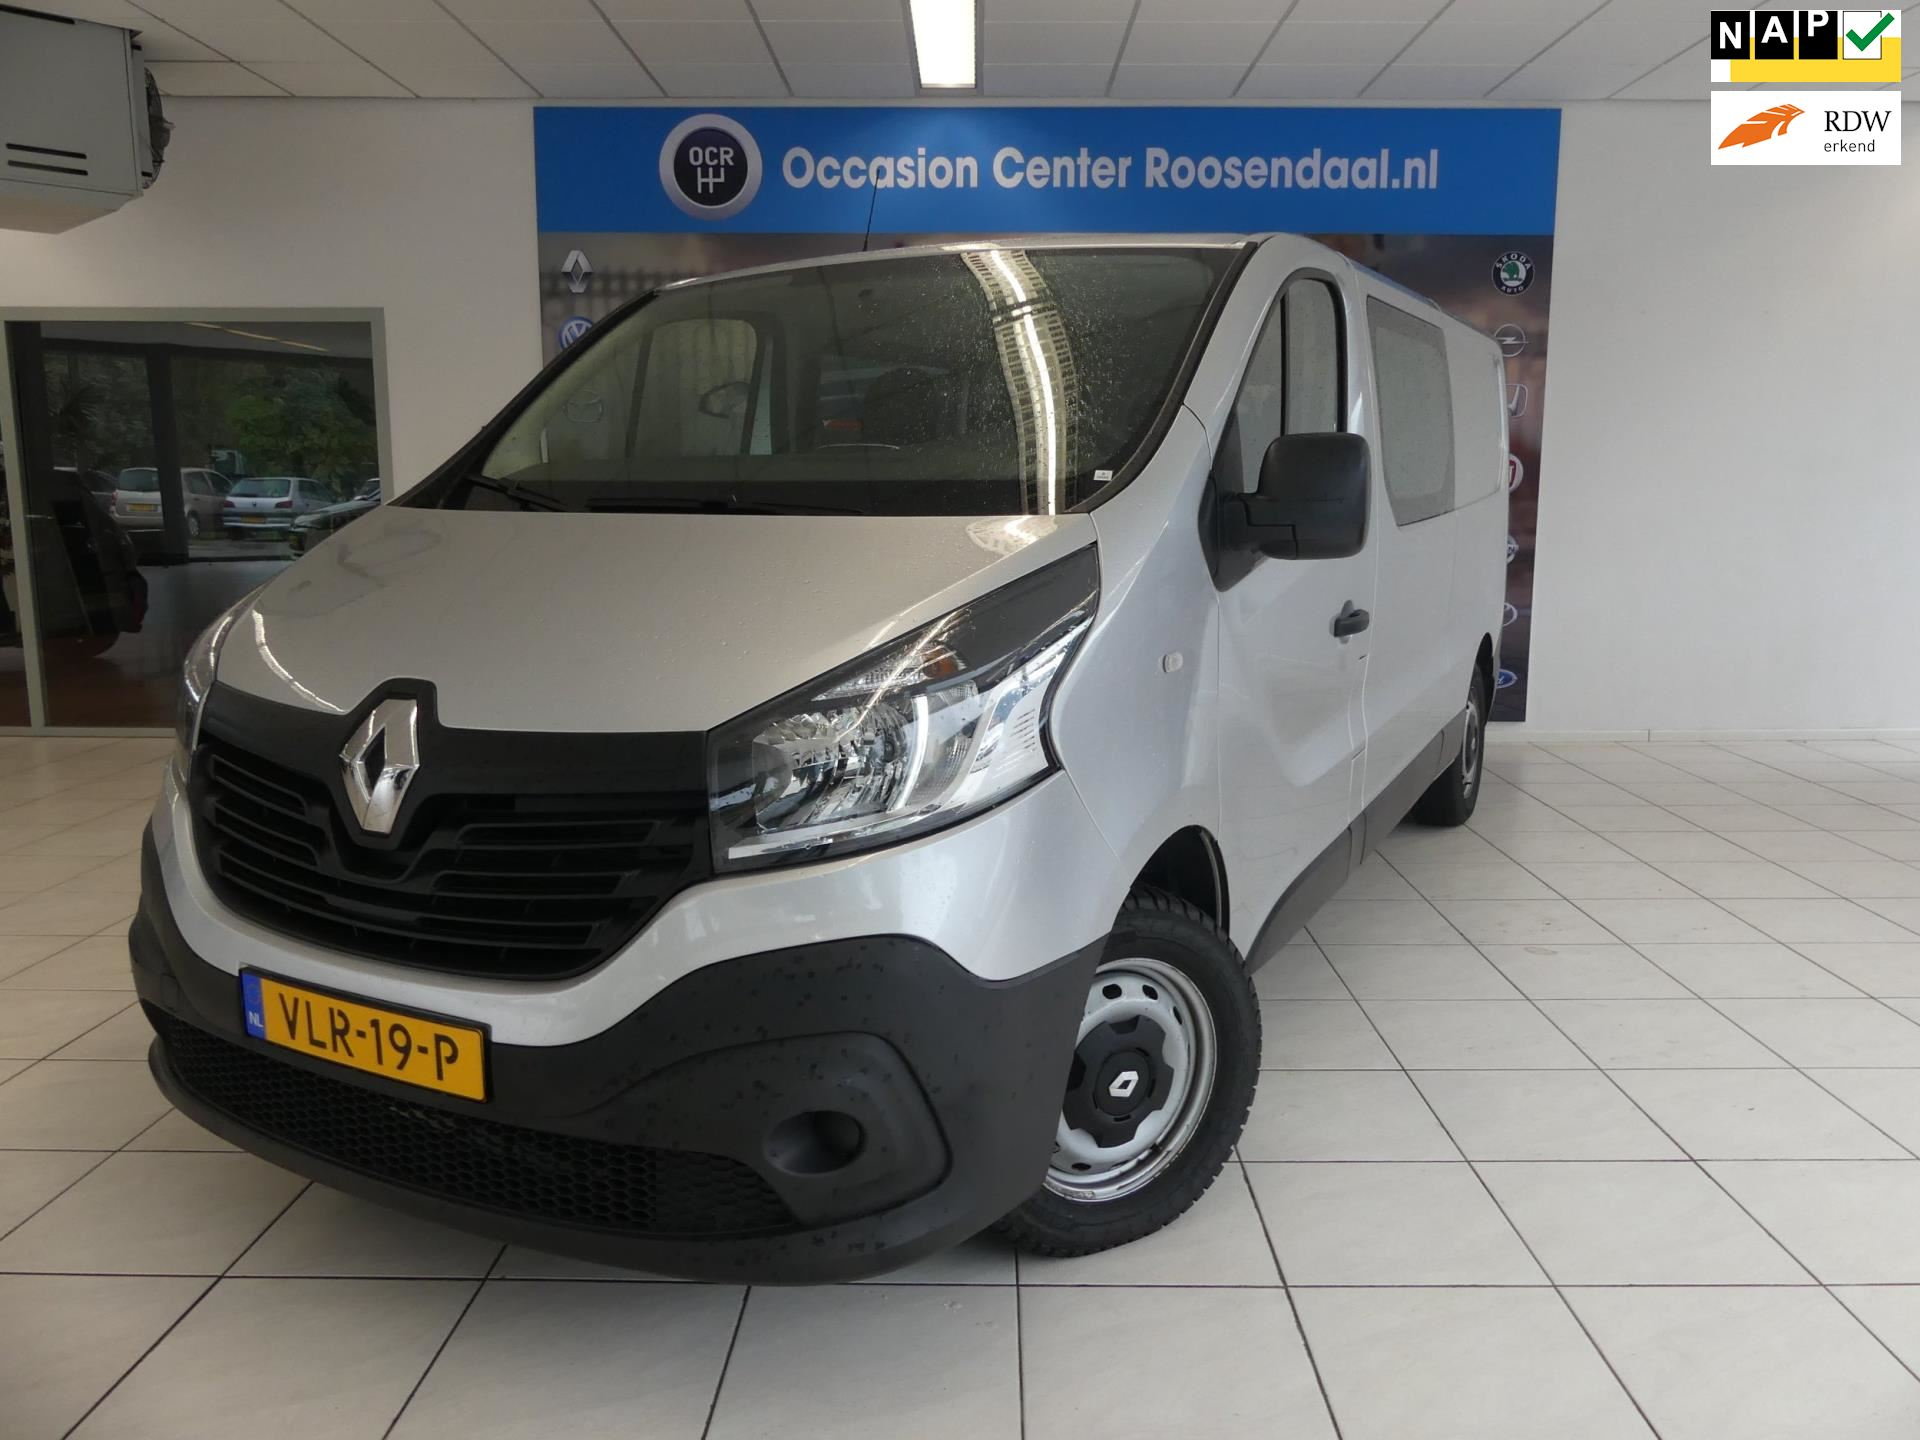 Renault Trafic occasion - Occasion Center Roosendaal